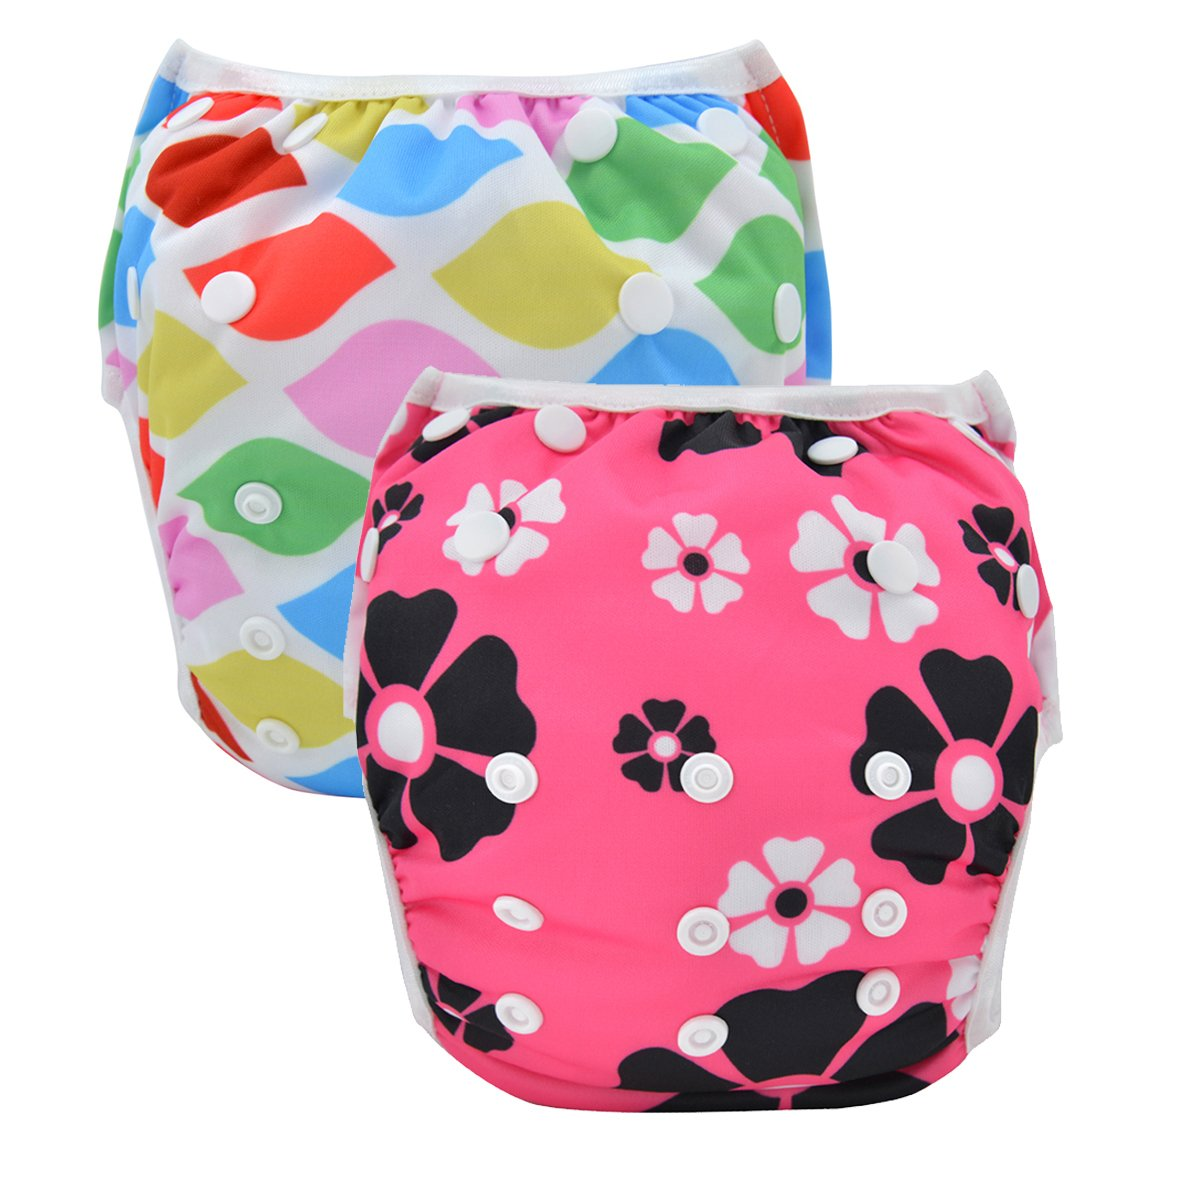 Babygoal 2 Pack Reusable Swim Diapers for Girls, Washable and Adjustable for Swimming & Baby Shower Gift Fit Babies 0-2 Years(Ship from CA,US) Huapin